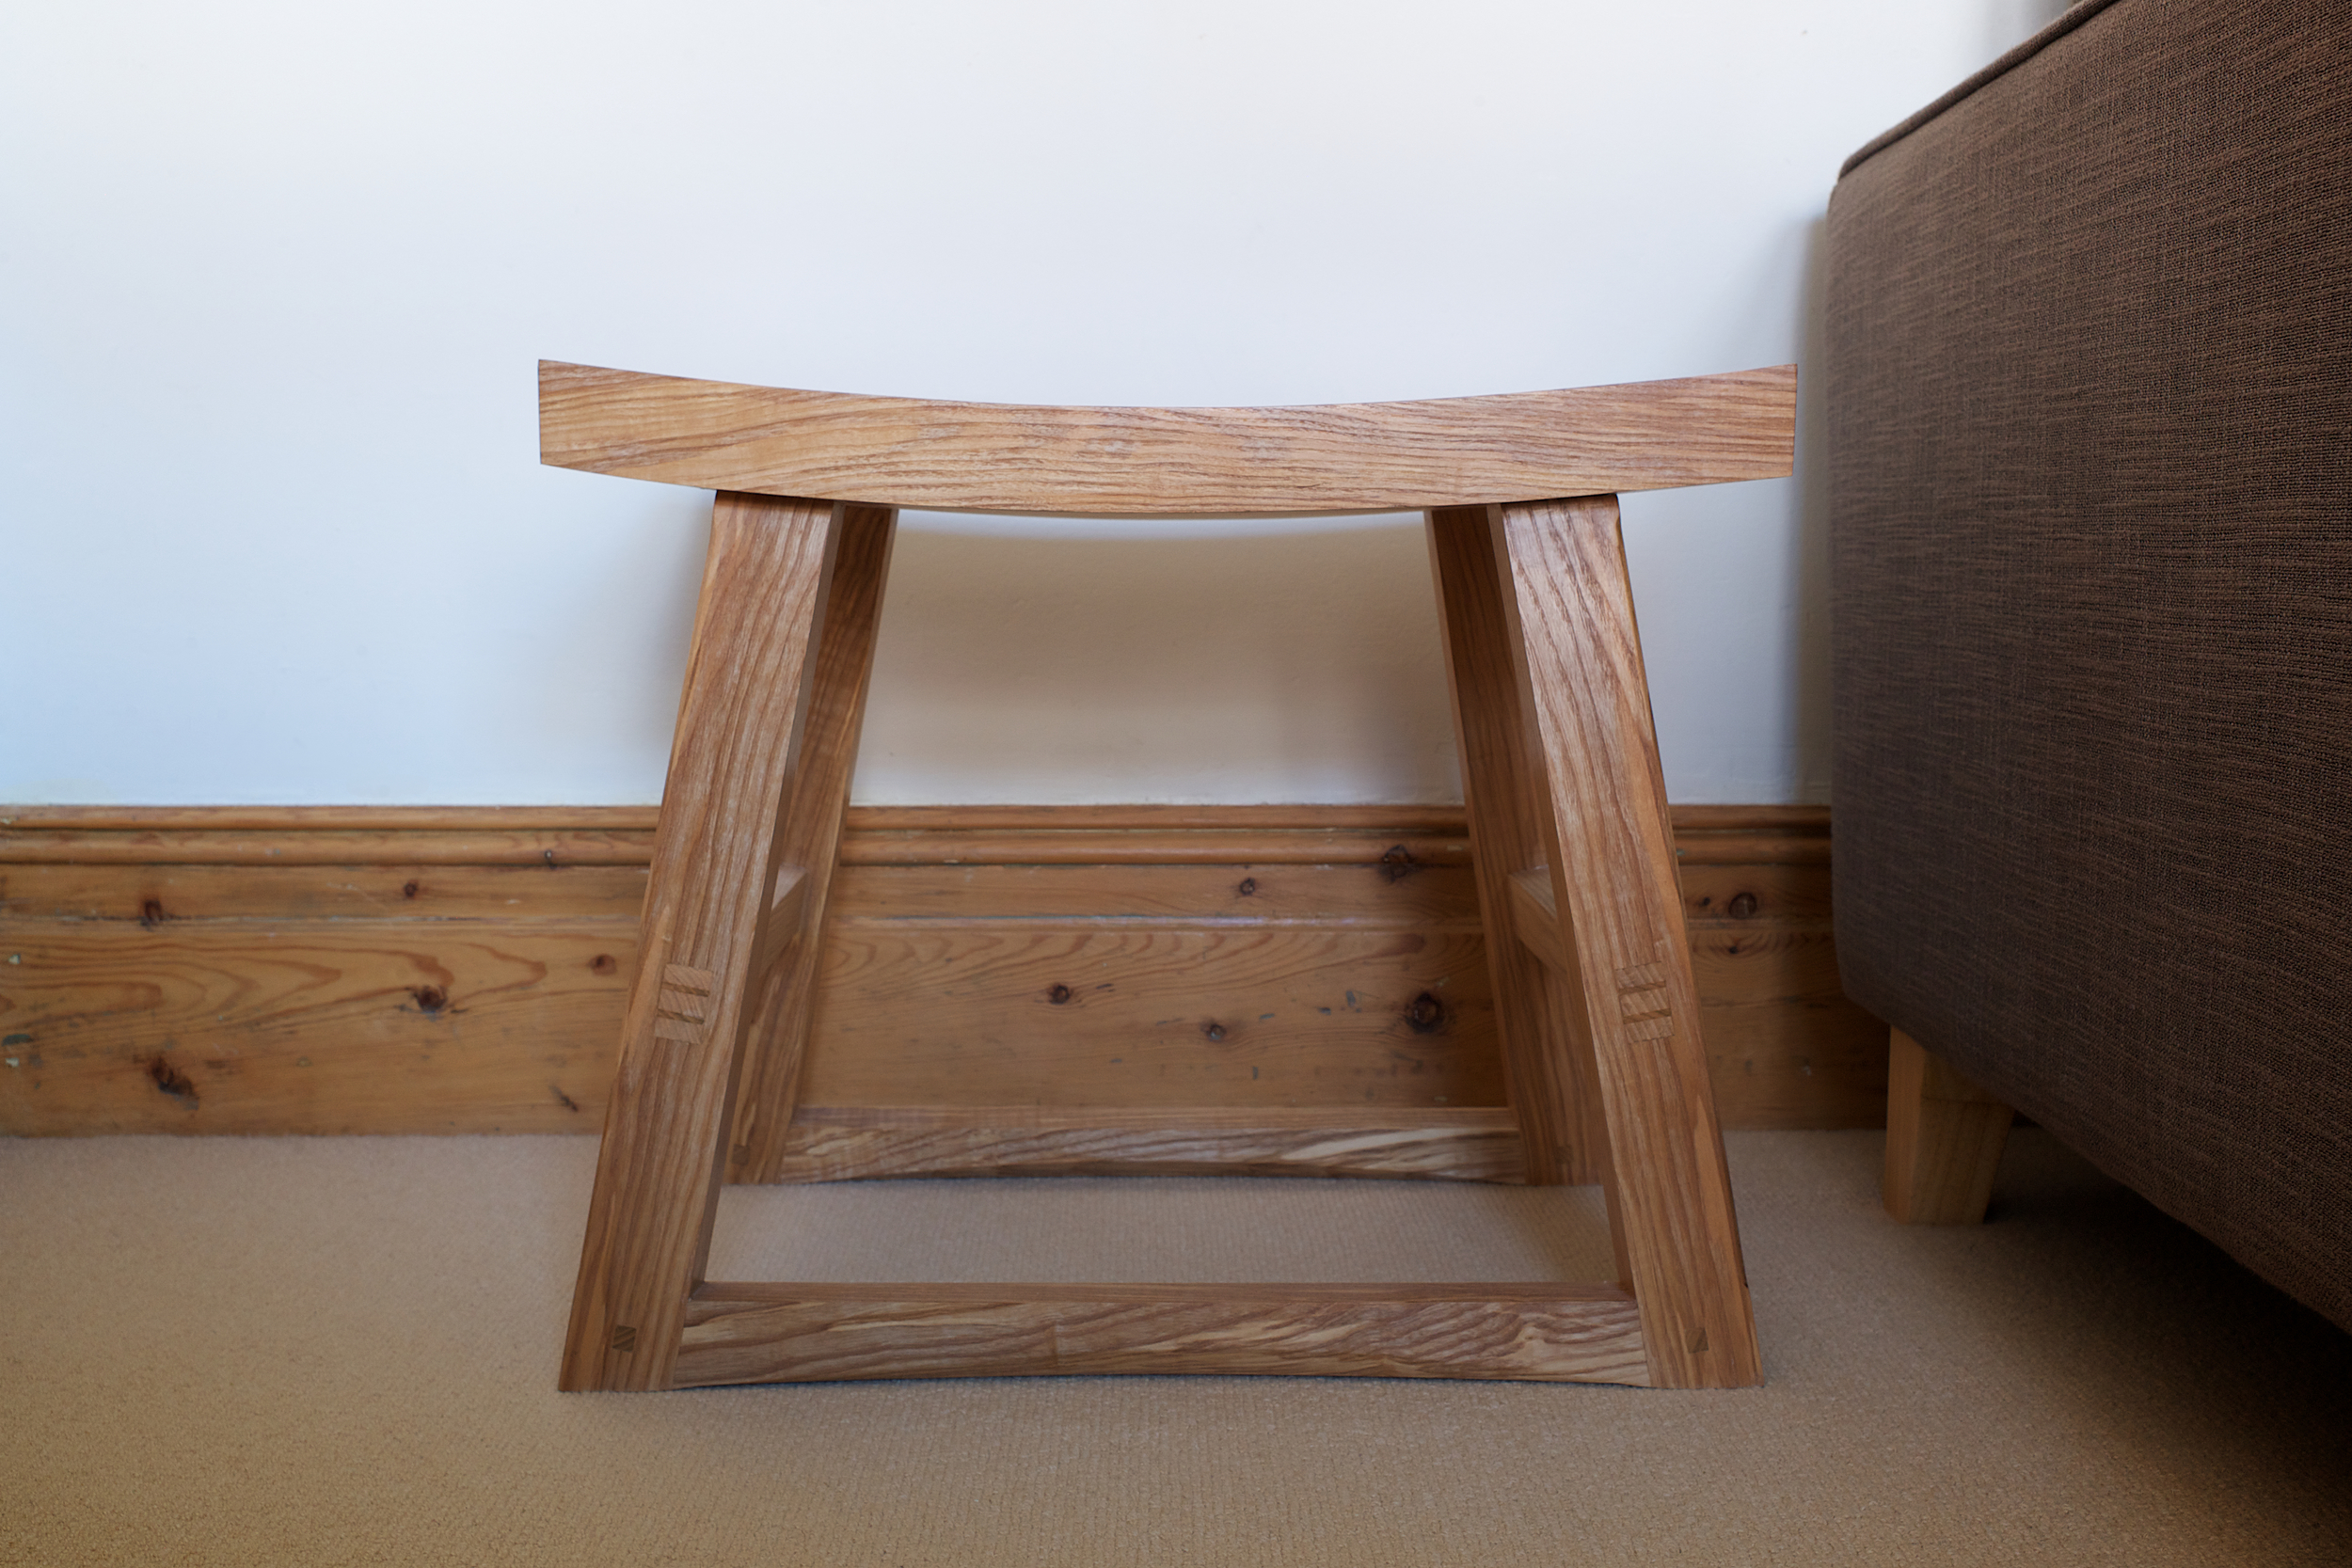 handmade petrel furniture stool, olive ash